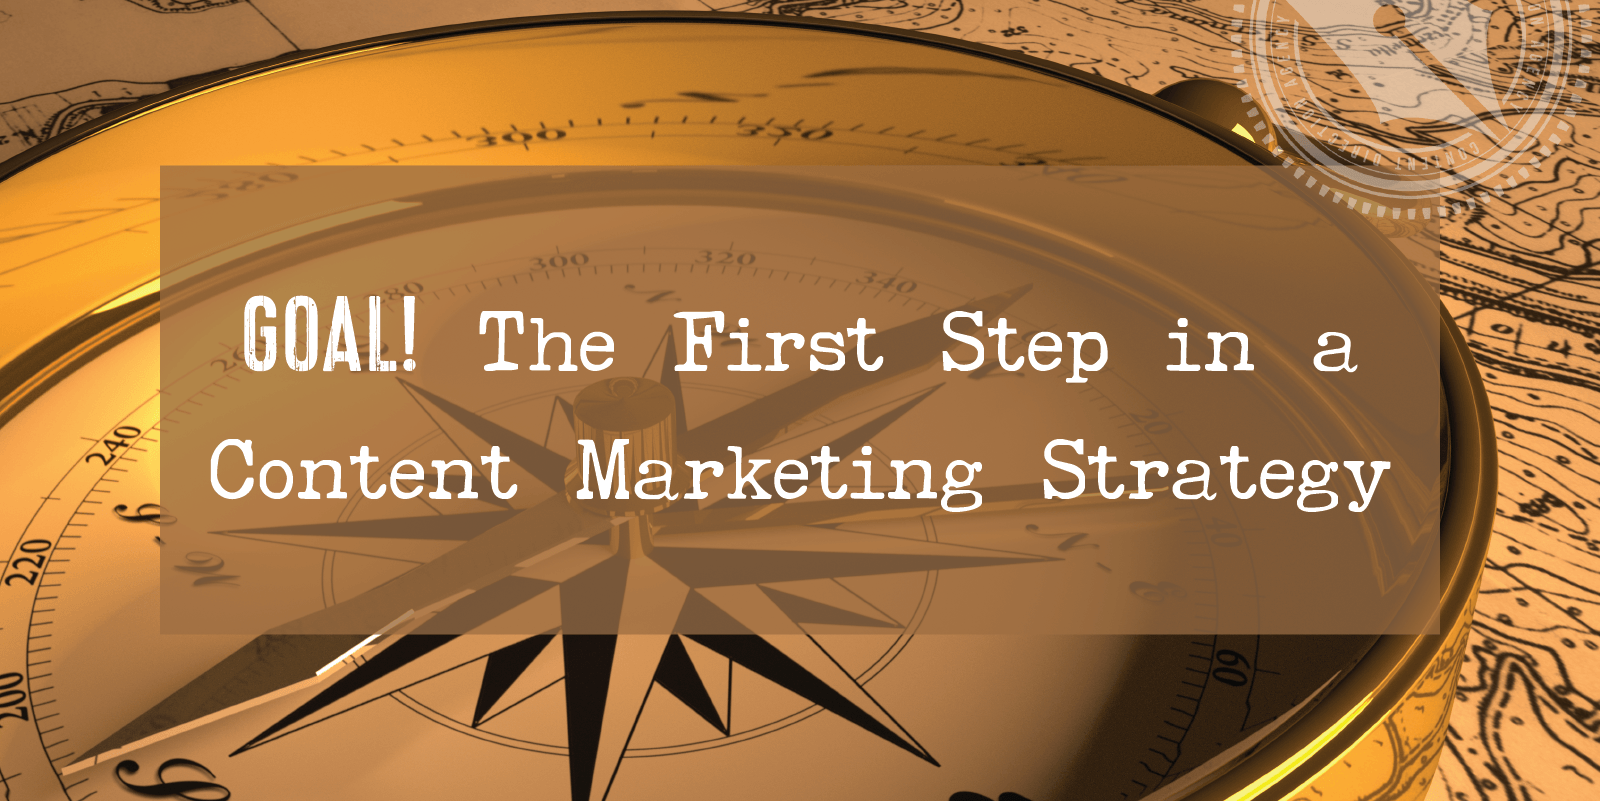 GOAL! The First Step in a Content Marketing Strategy